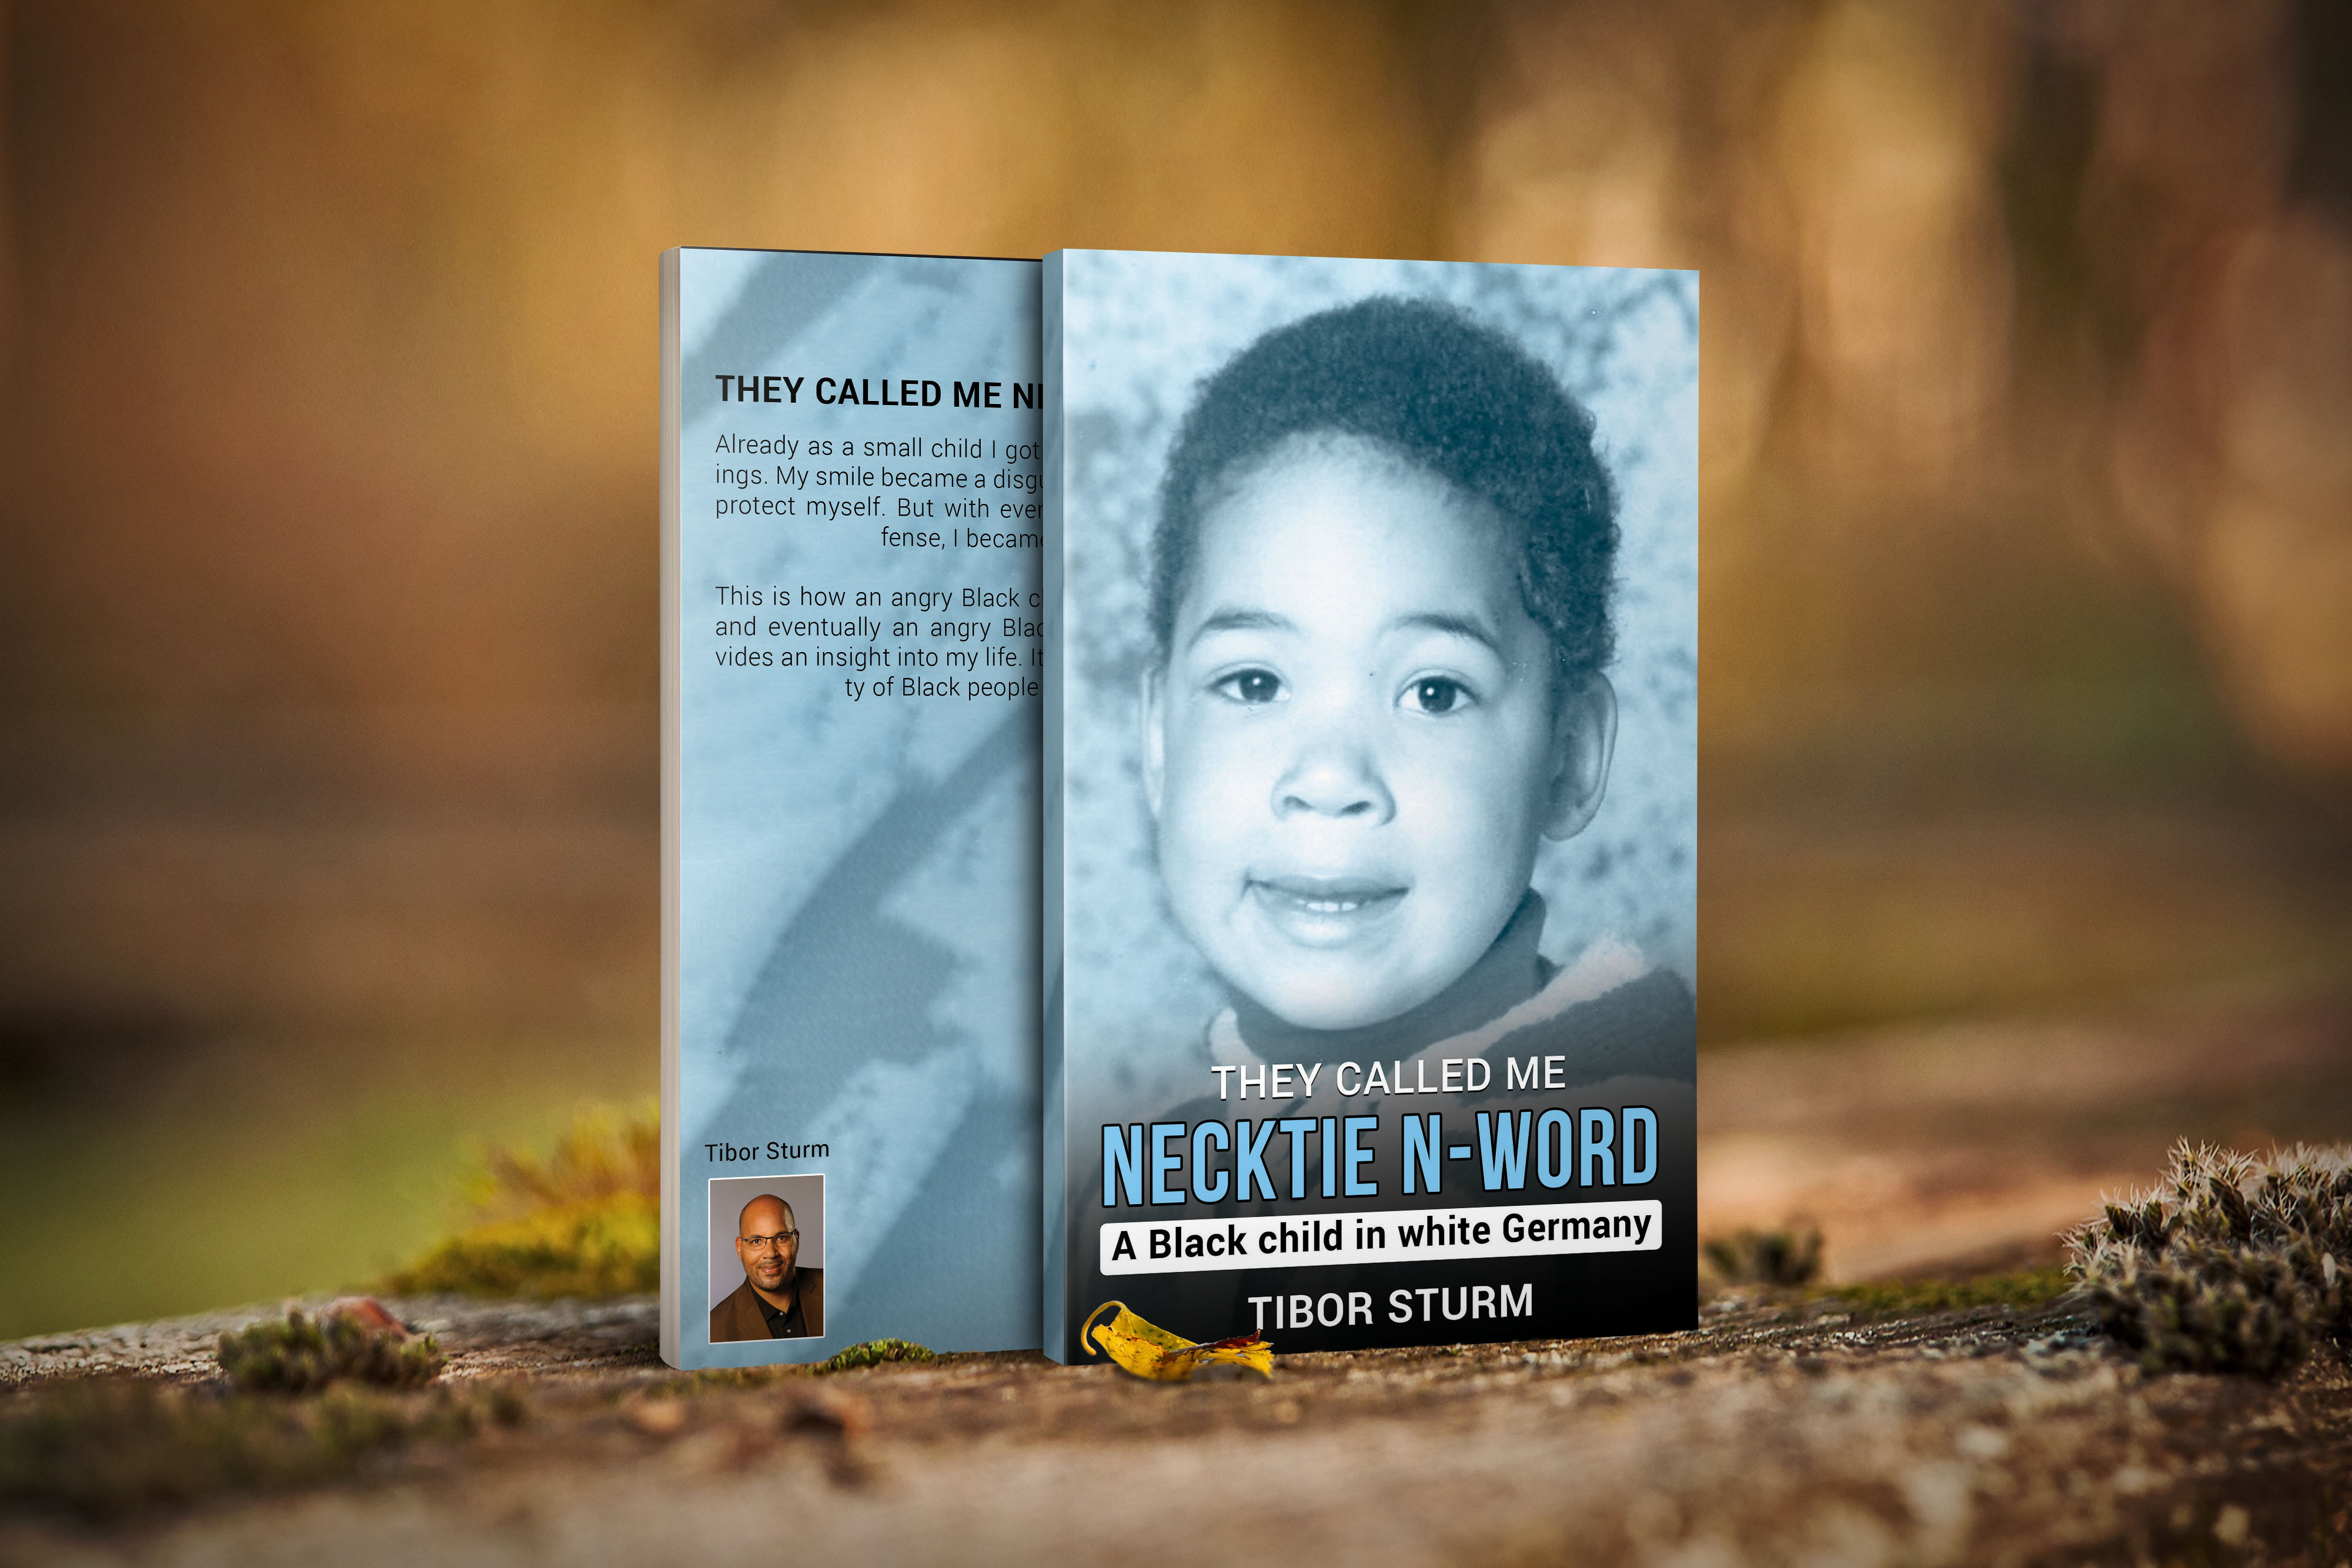 Tibor Sturm's new book highlights the harrowing experience Black people face in white-dominated environments